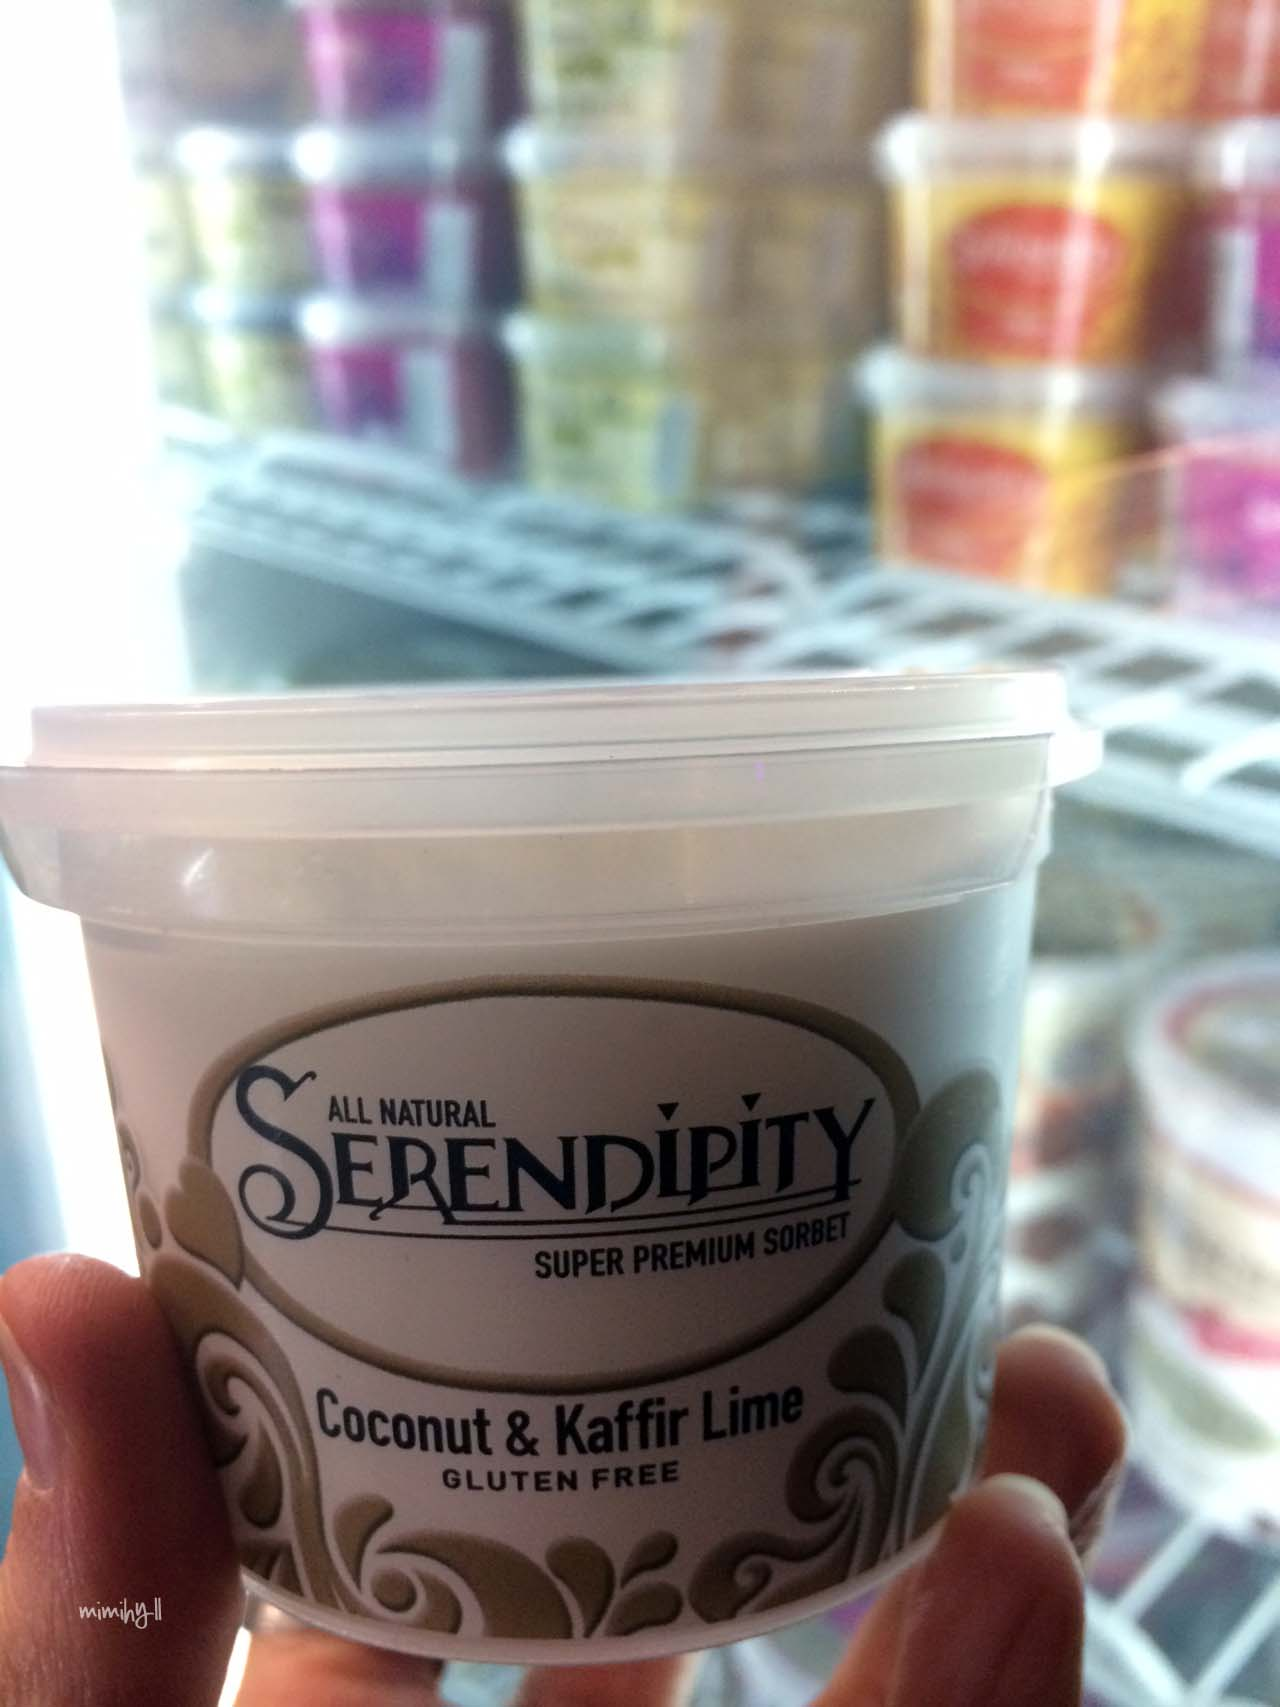 Serendipity Ice Cream, Night Noodle Markets